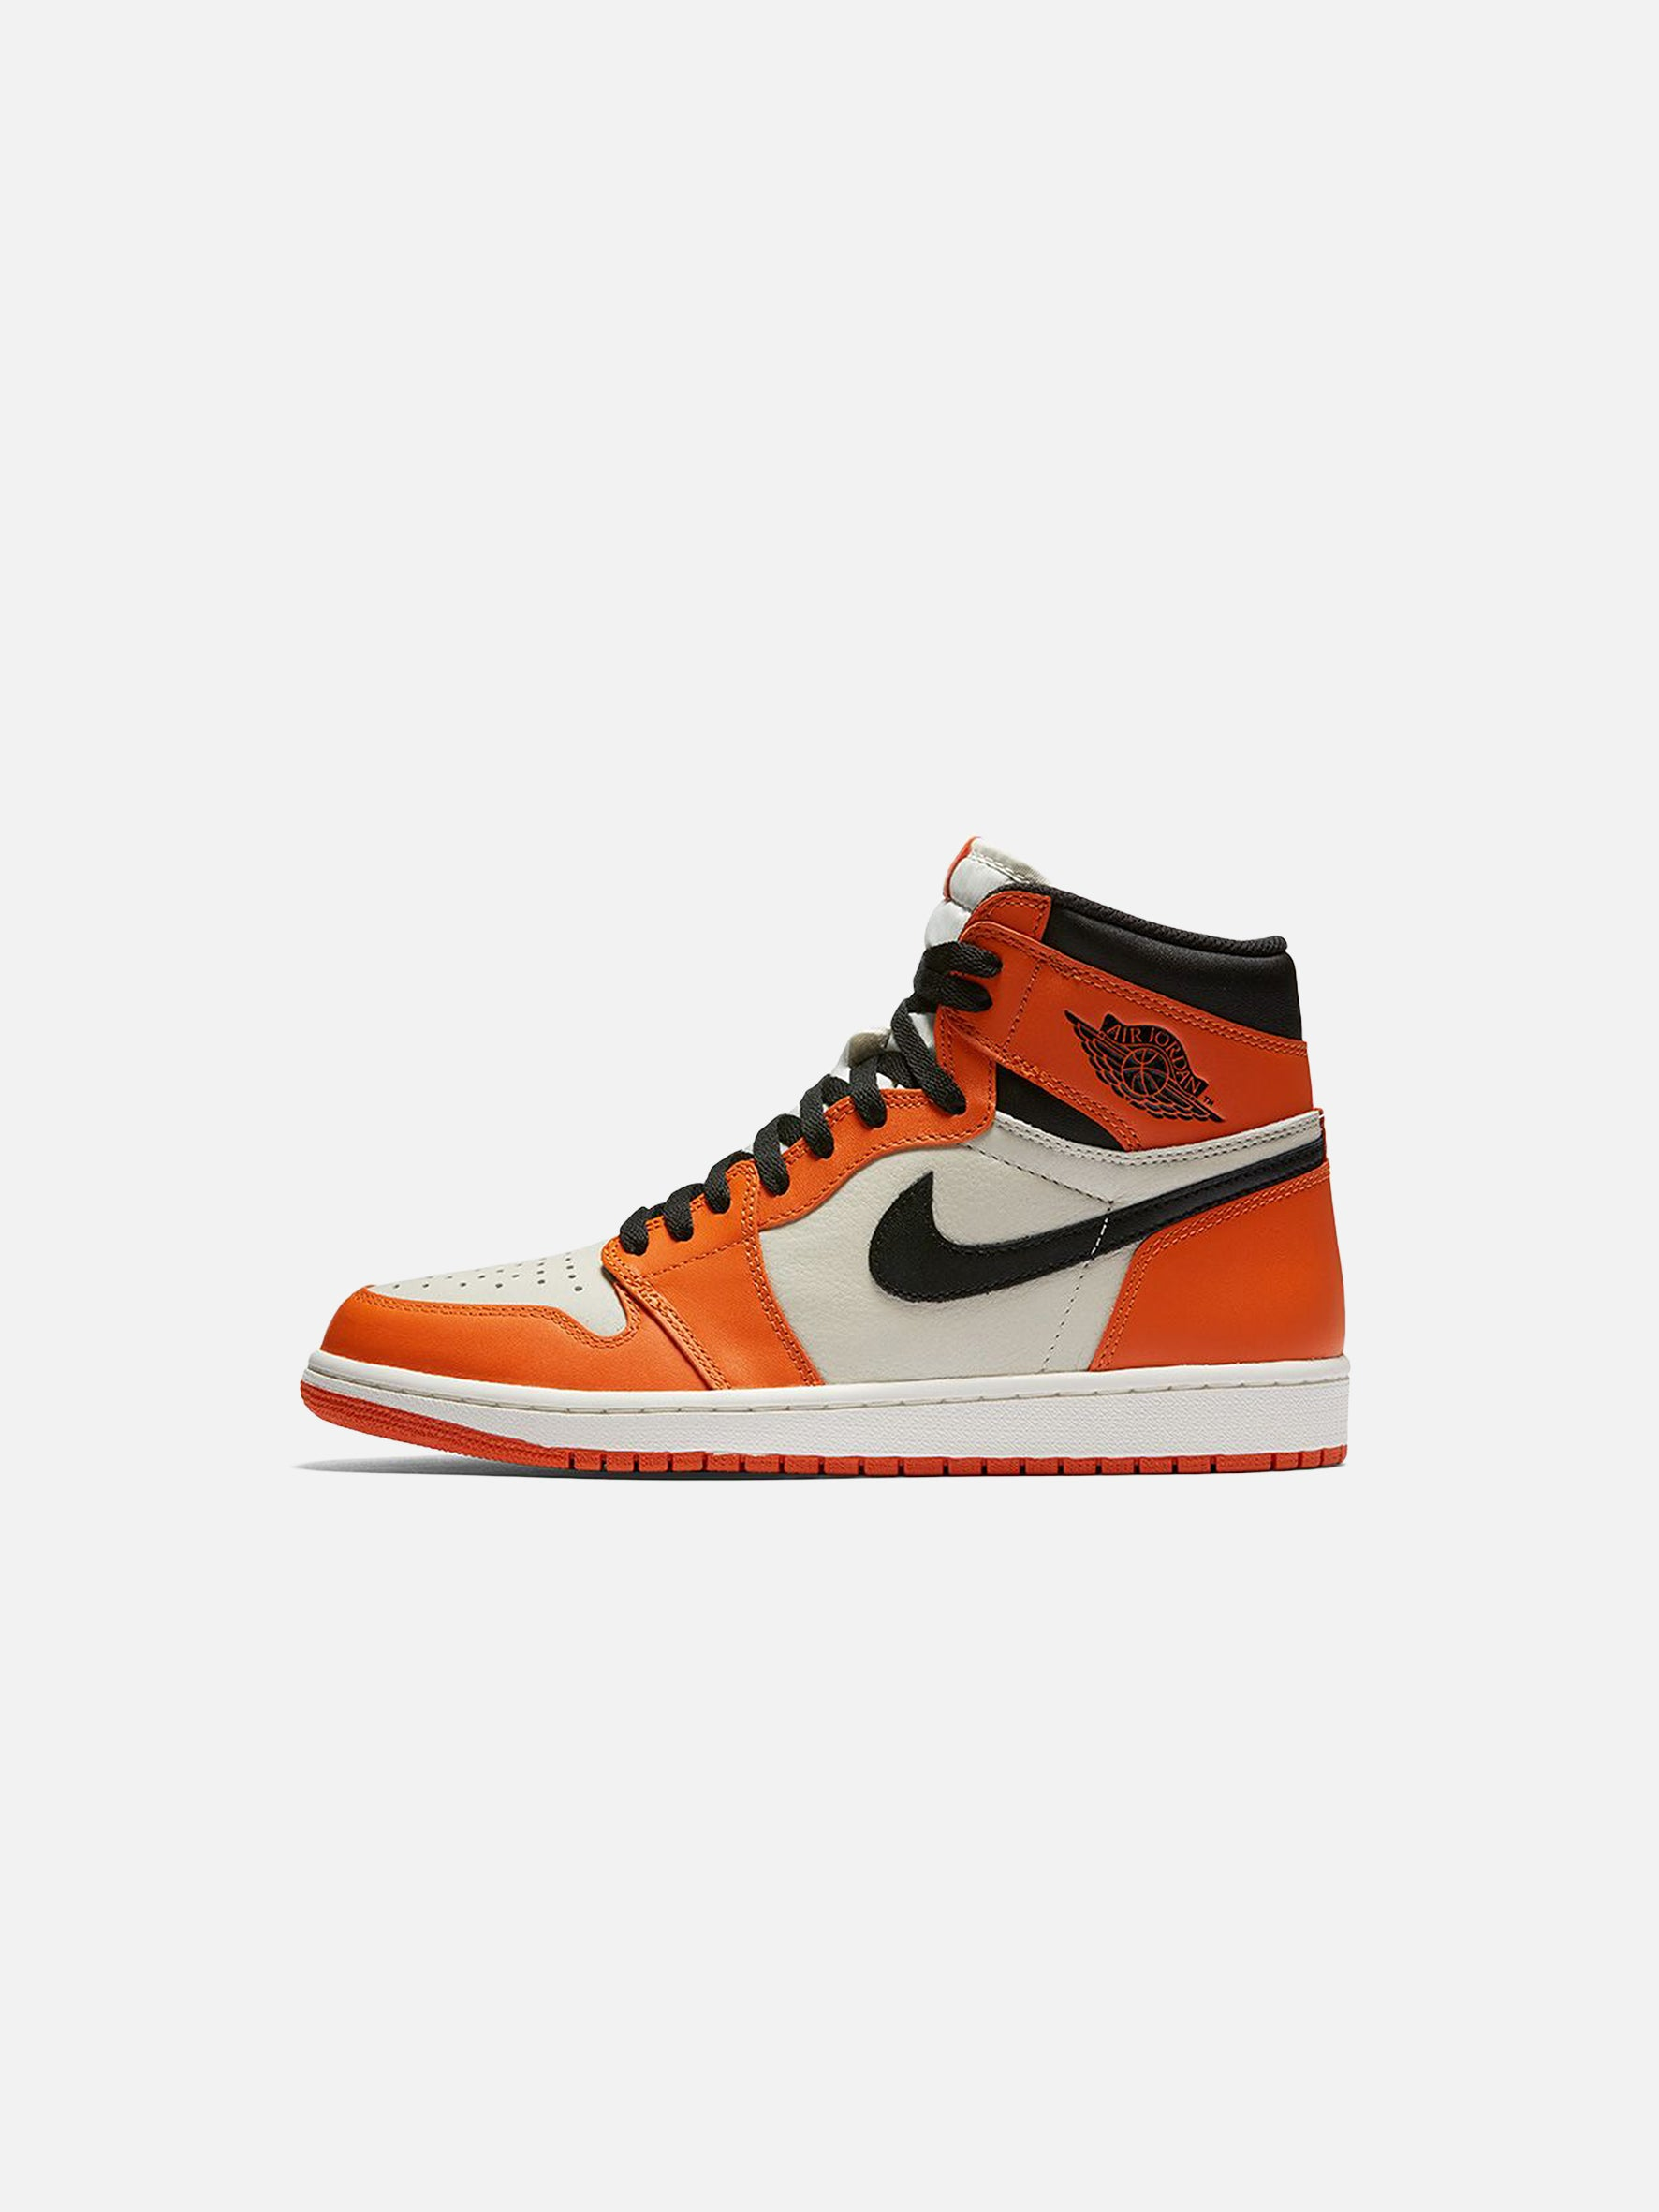 Nike Air Jordan 1 Retro Reverse Shattered Backboard